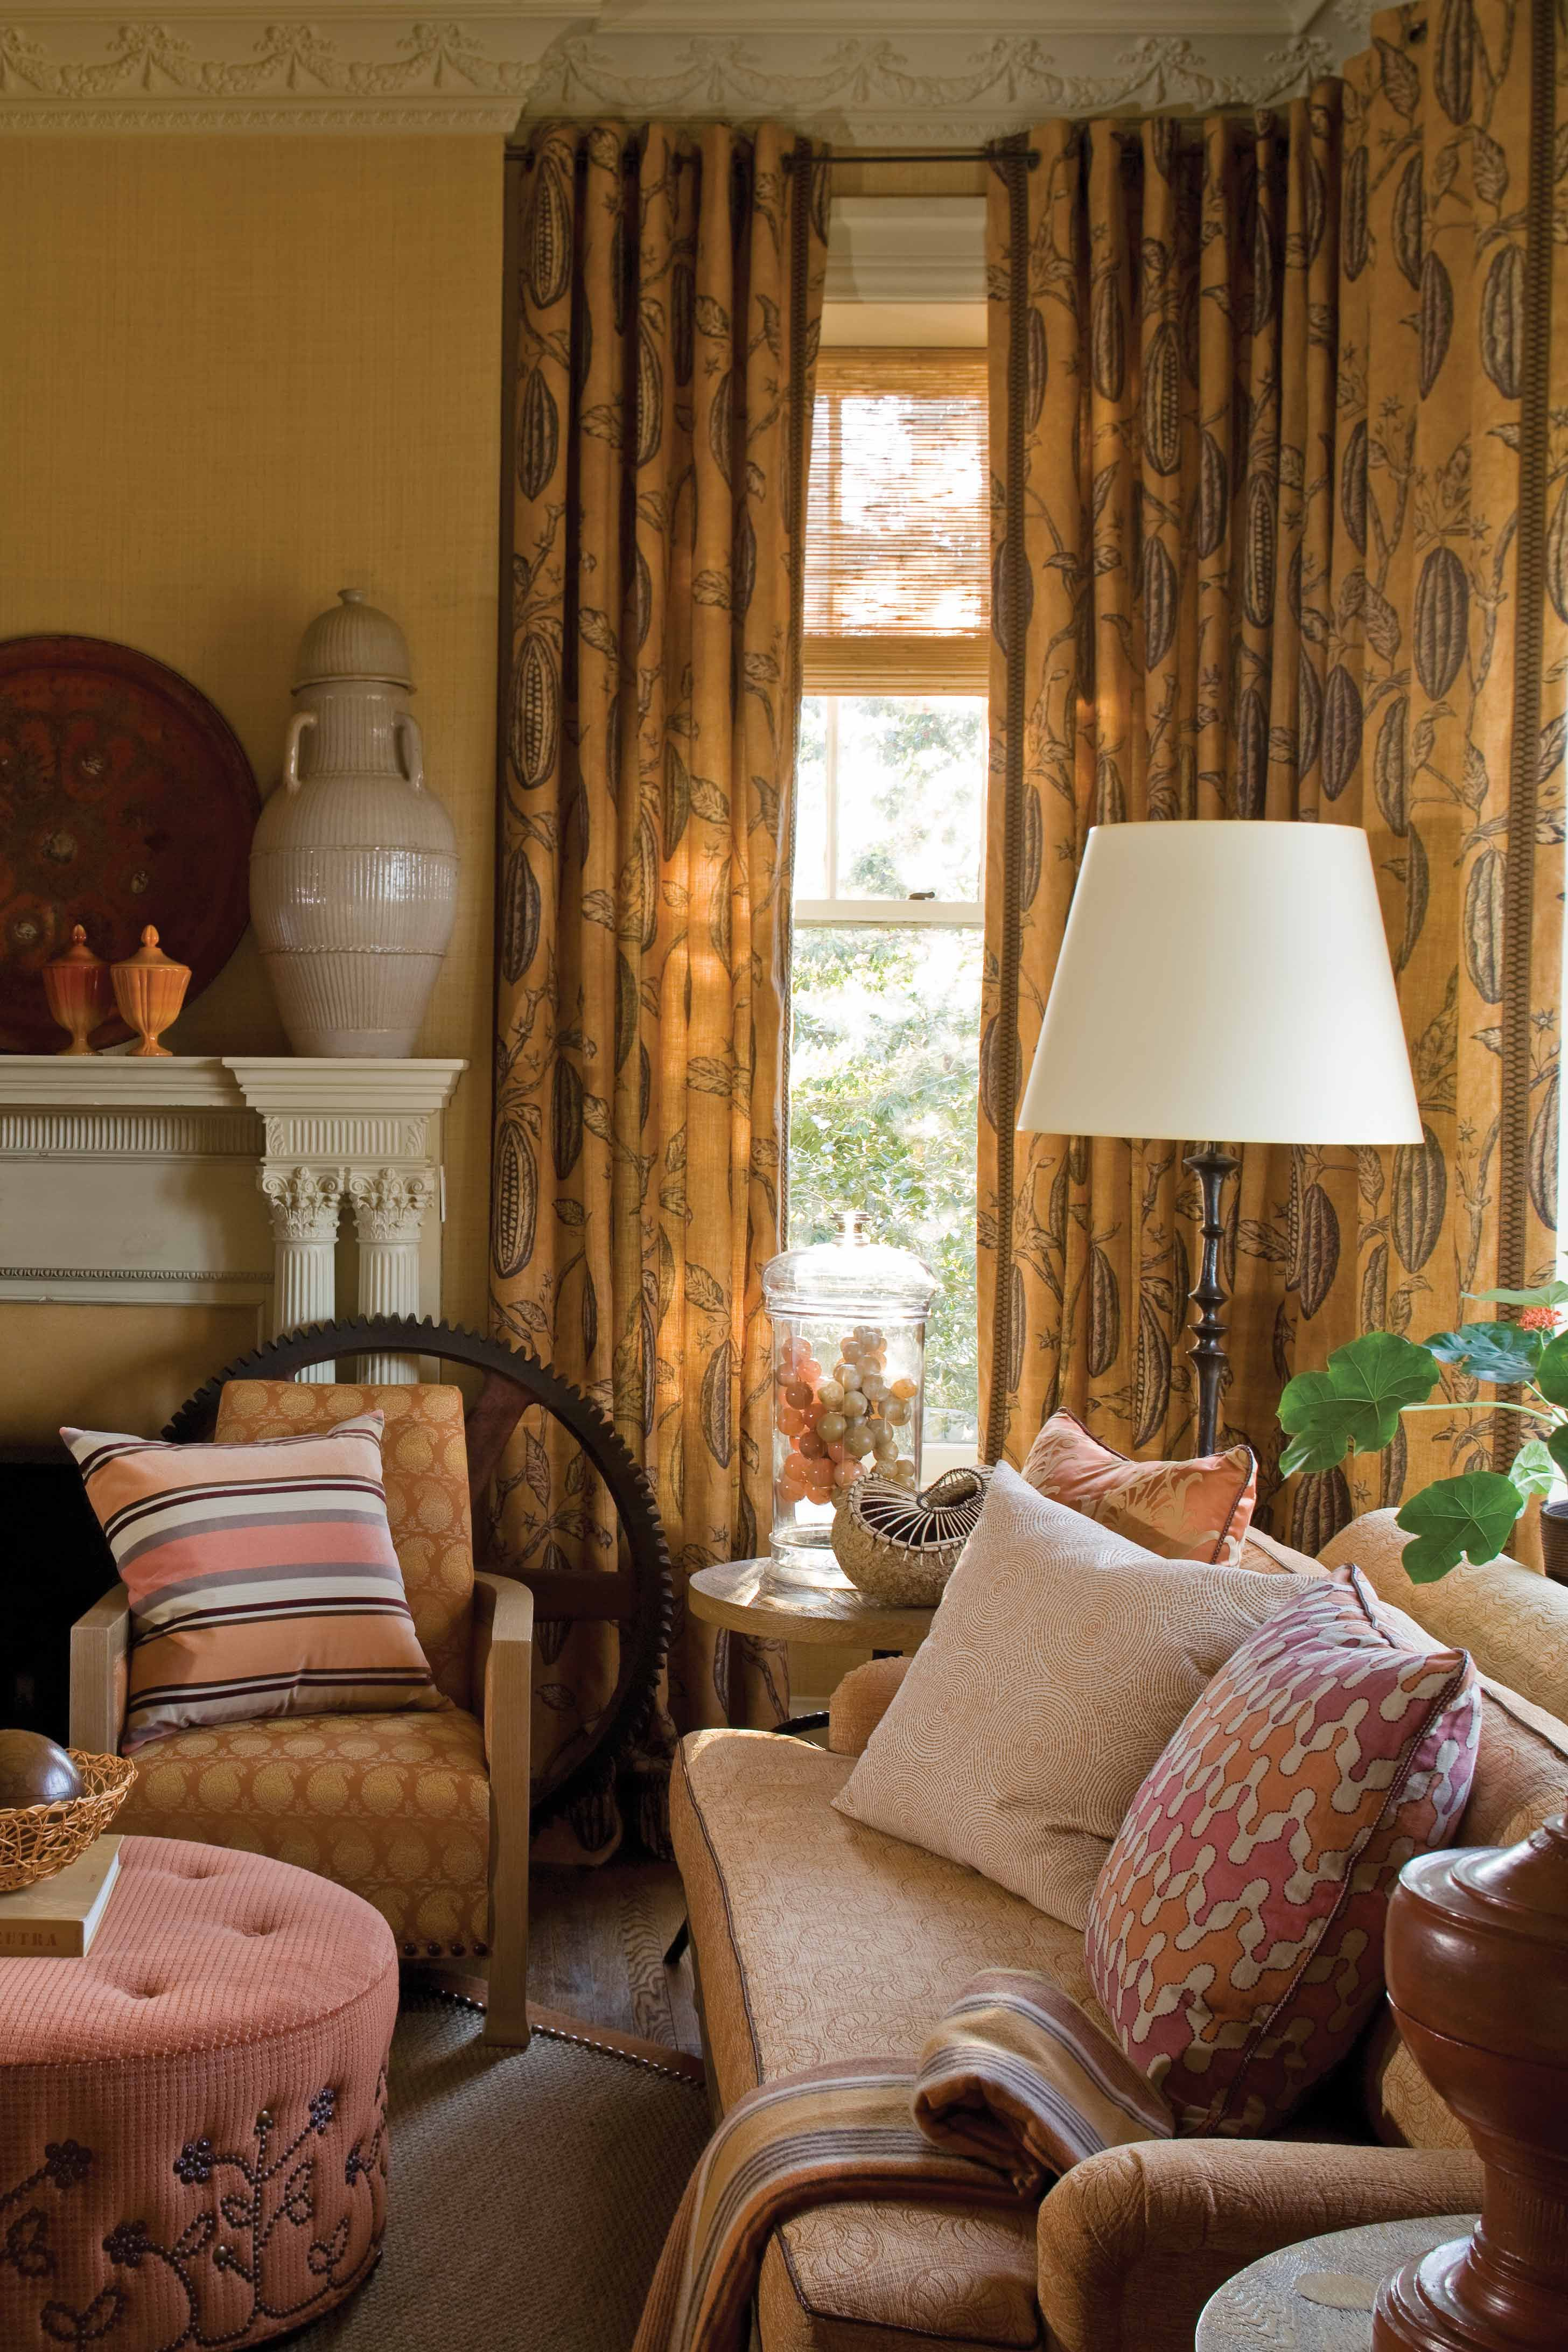 Barry Dixon Collection With Images Interior Design Fabric